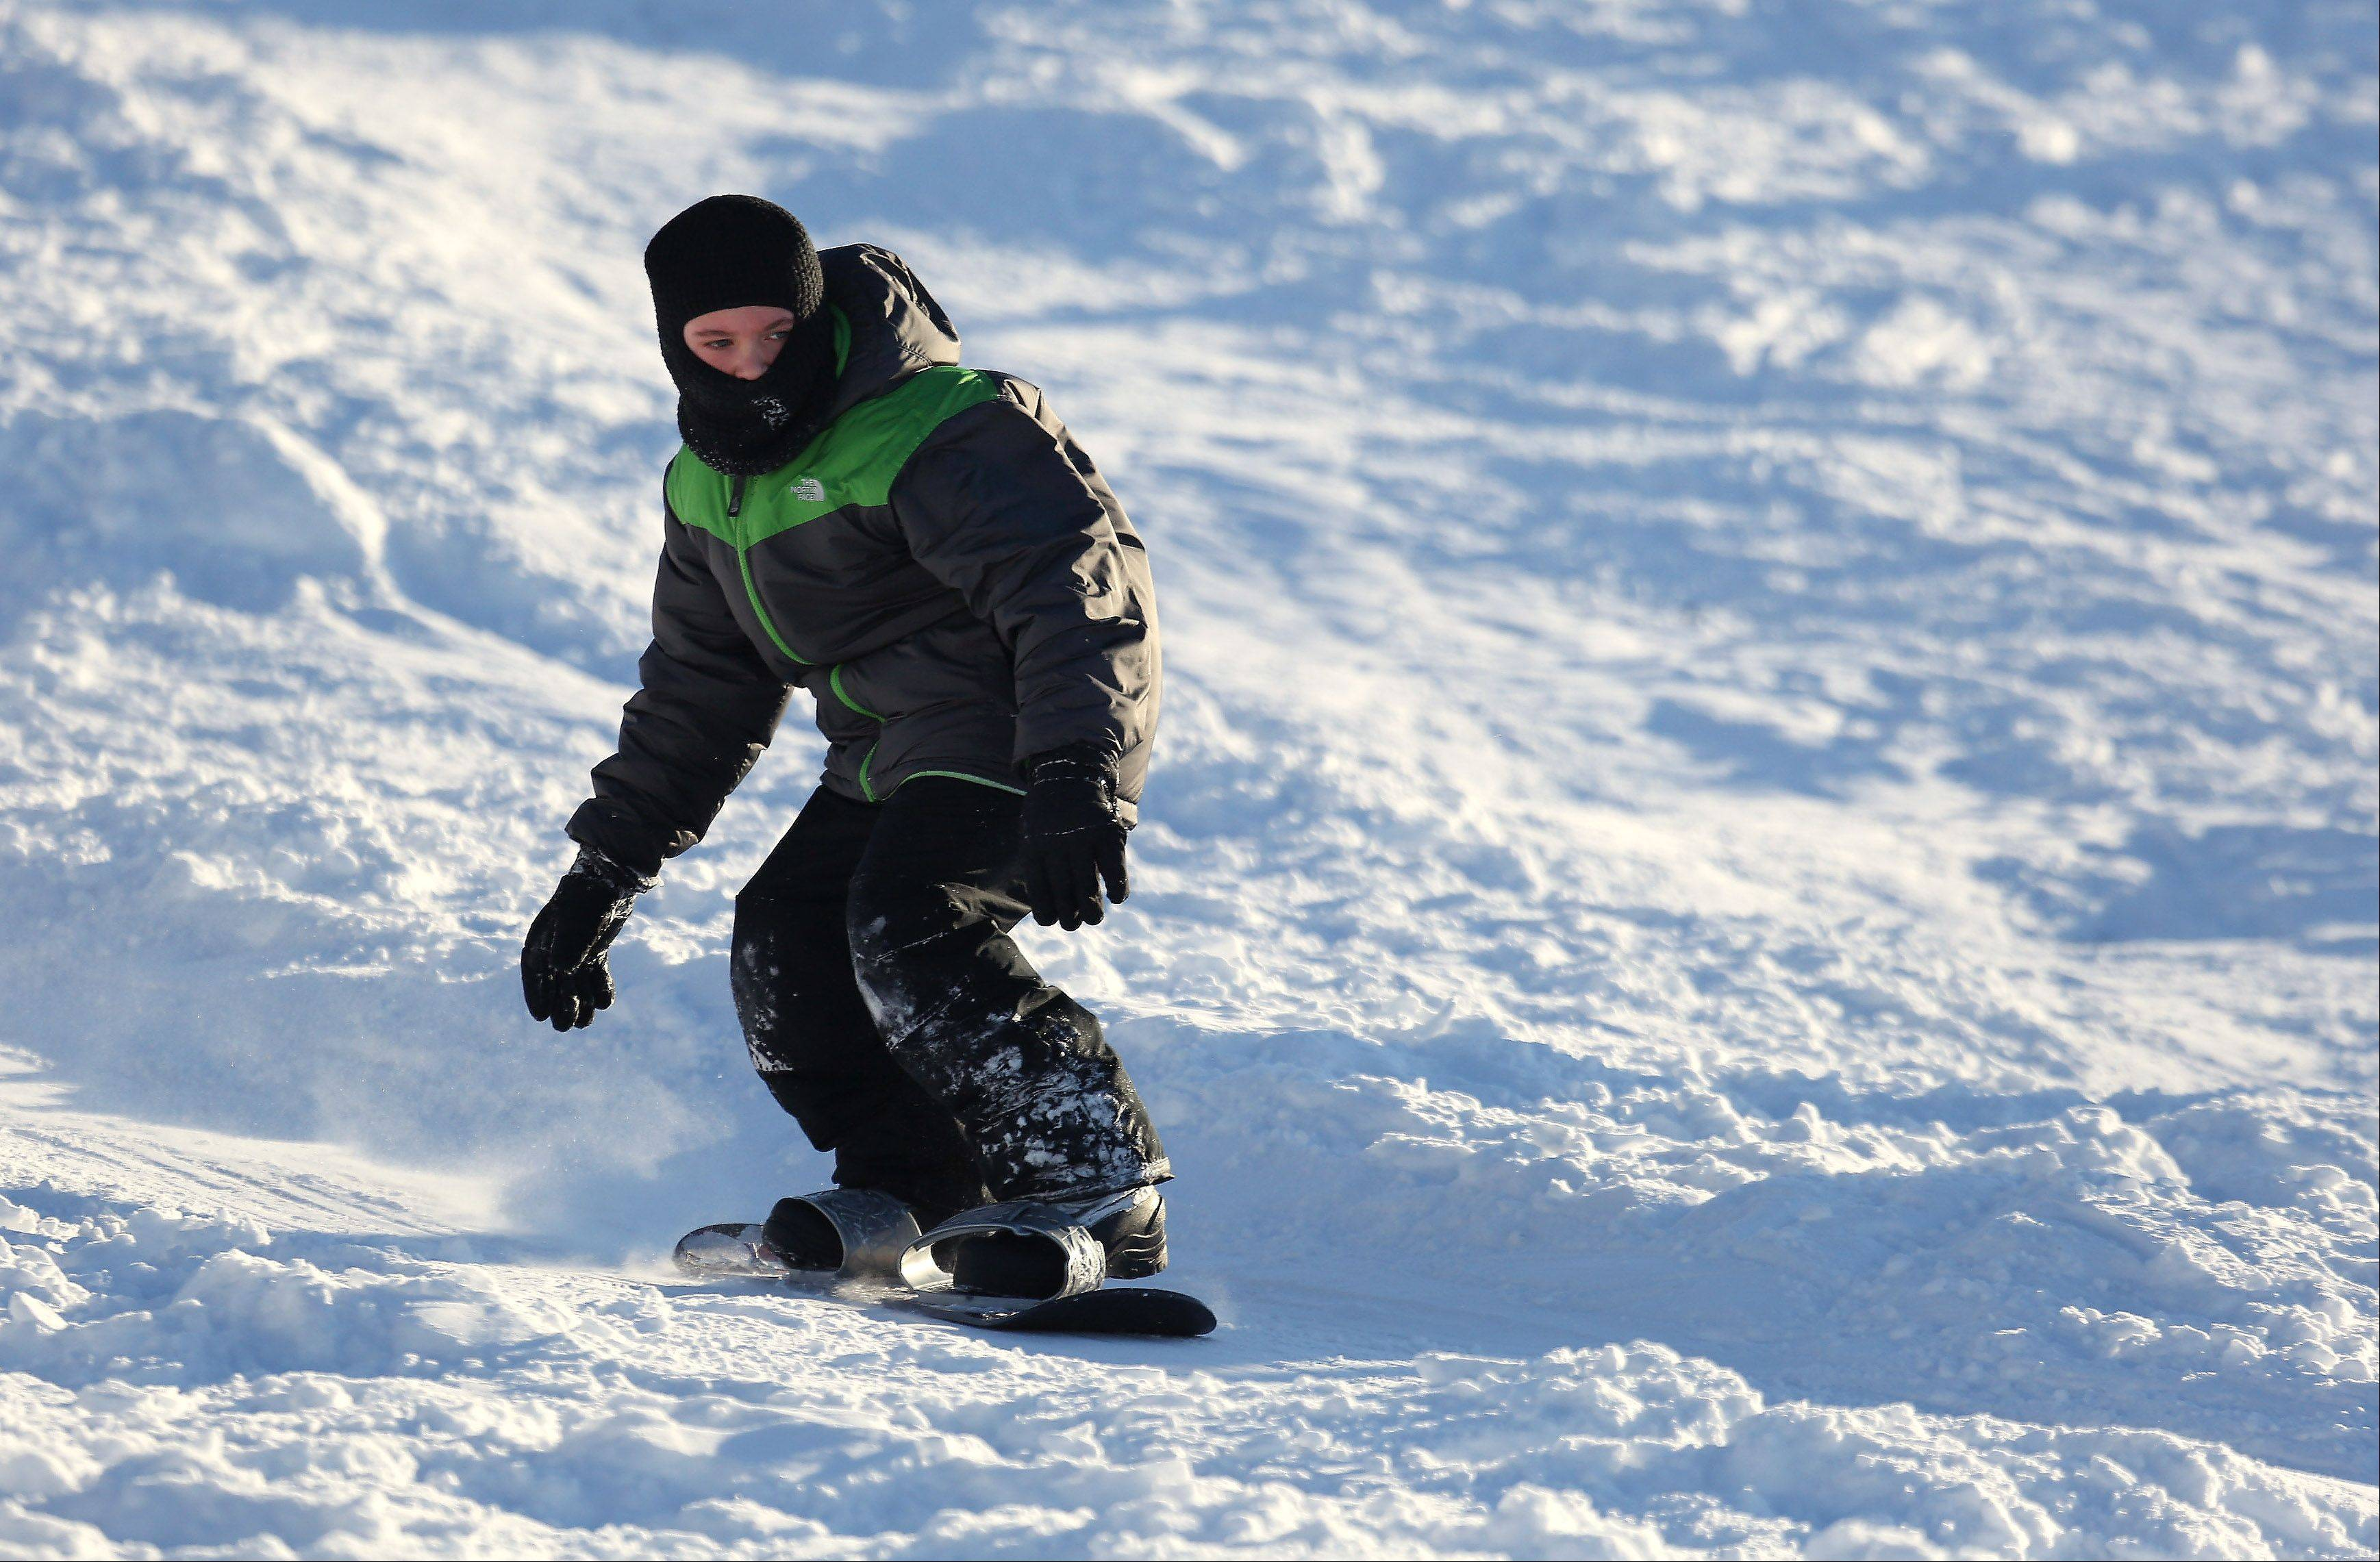 Marty Humbert, 10, rides a snowboard at Century Park in Vernon Hills on Thursday after a two-day winter storm produced almost 17 inches of snow.